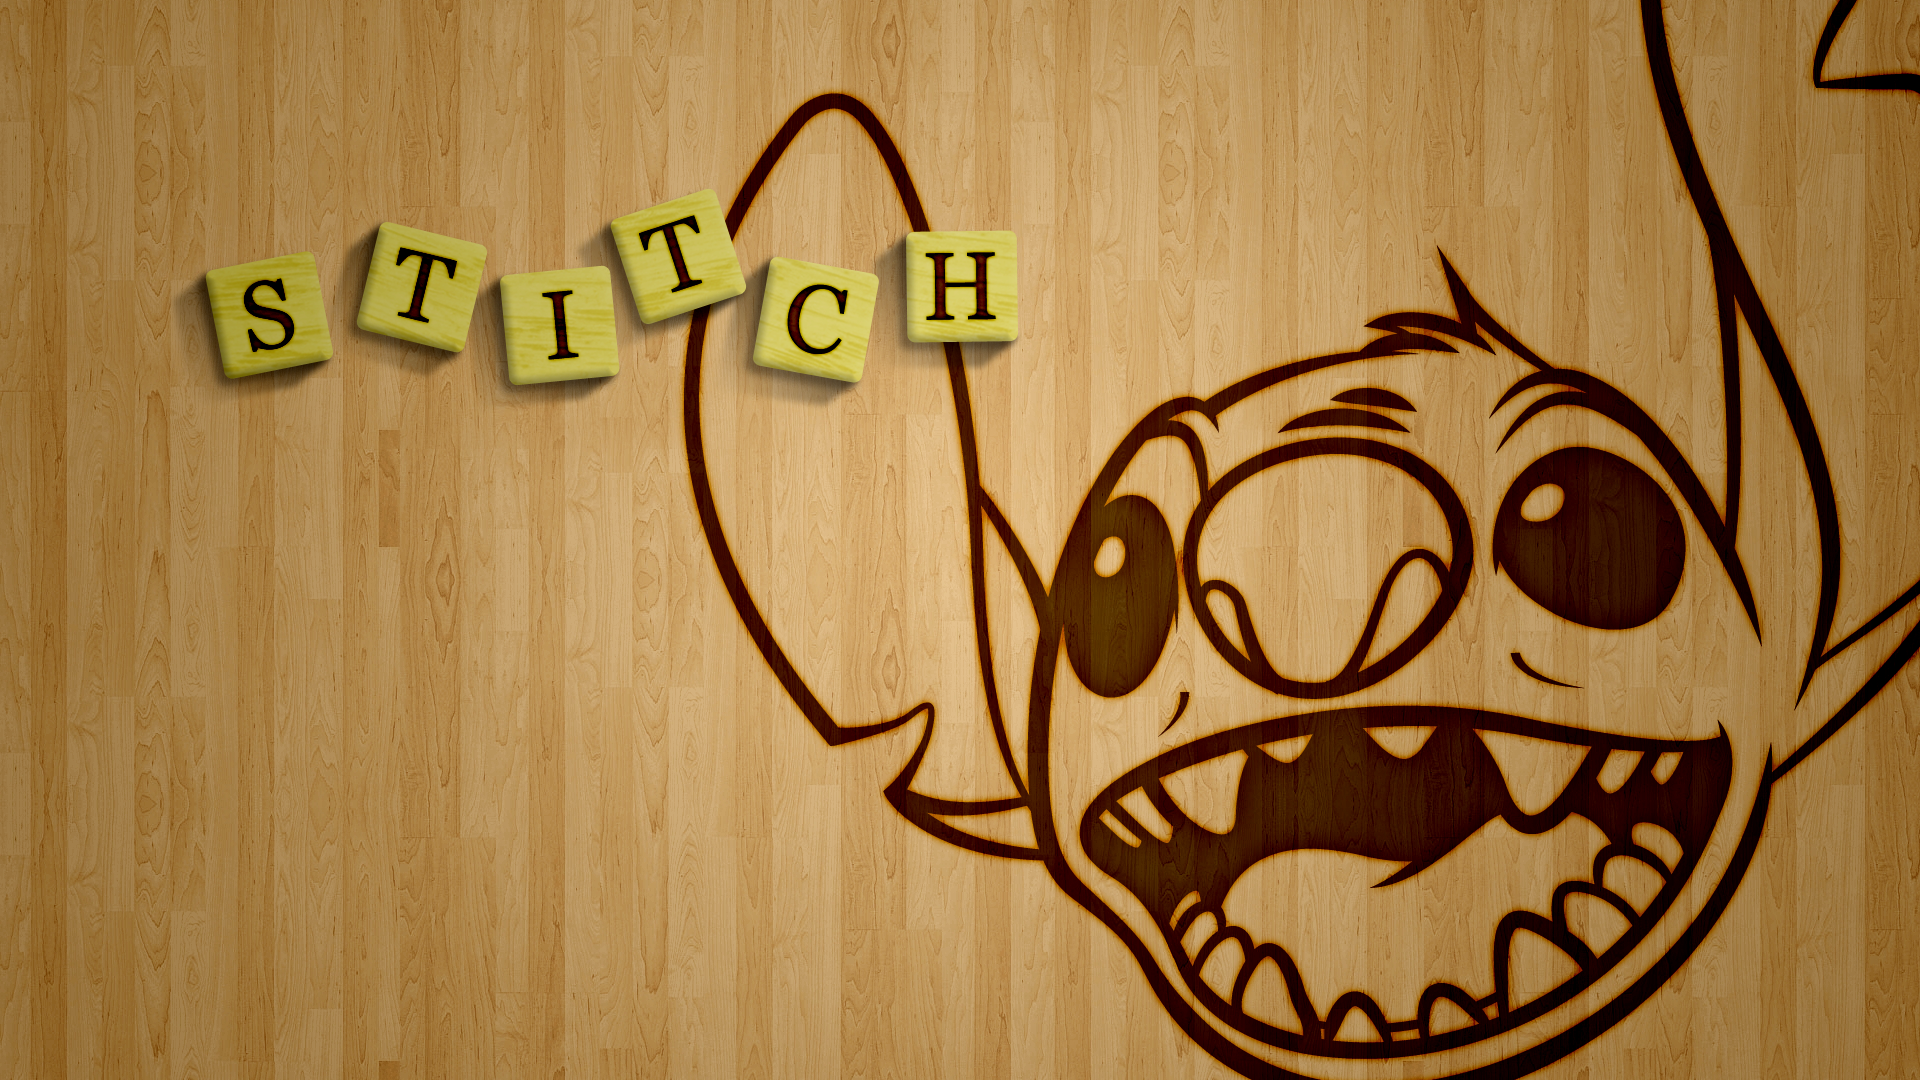 Wallpaper Stitch 97 Wallpapers Hd Wallpapers With